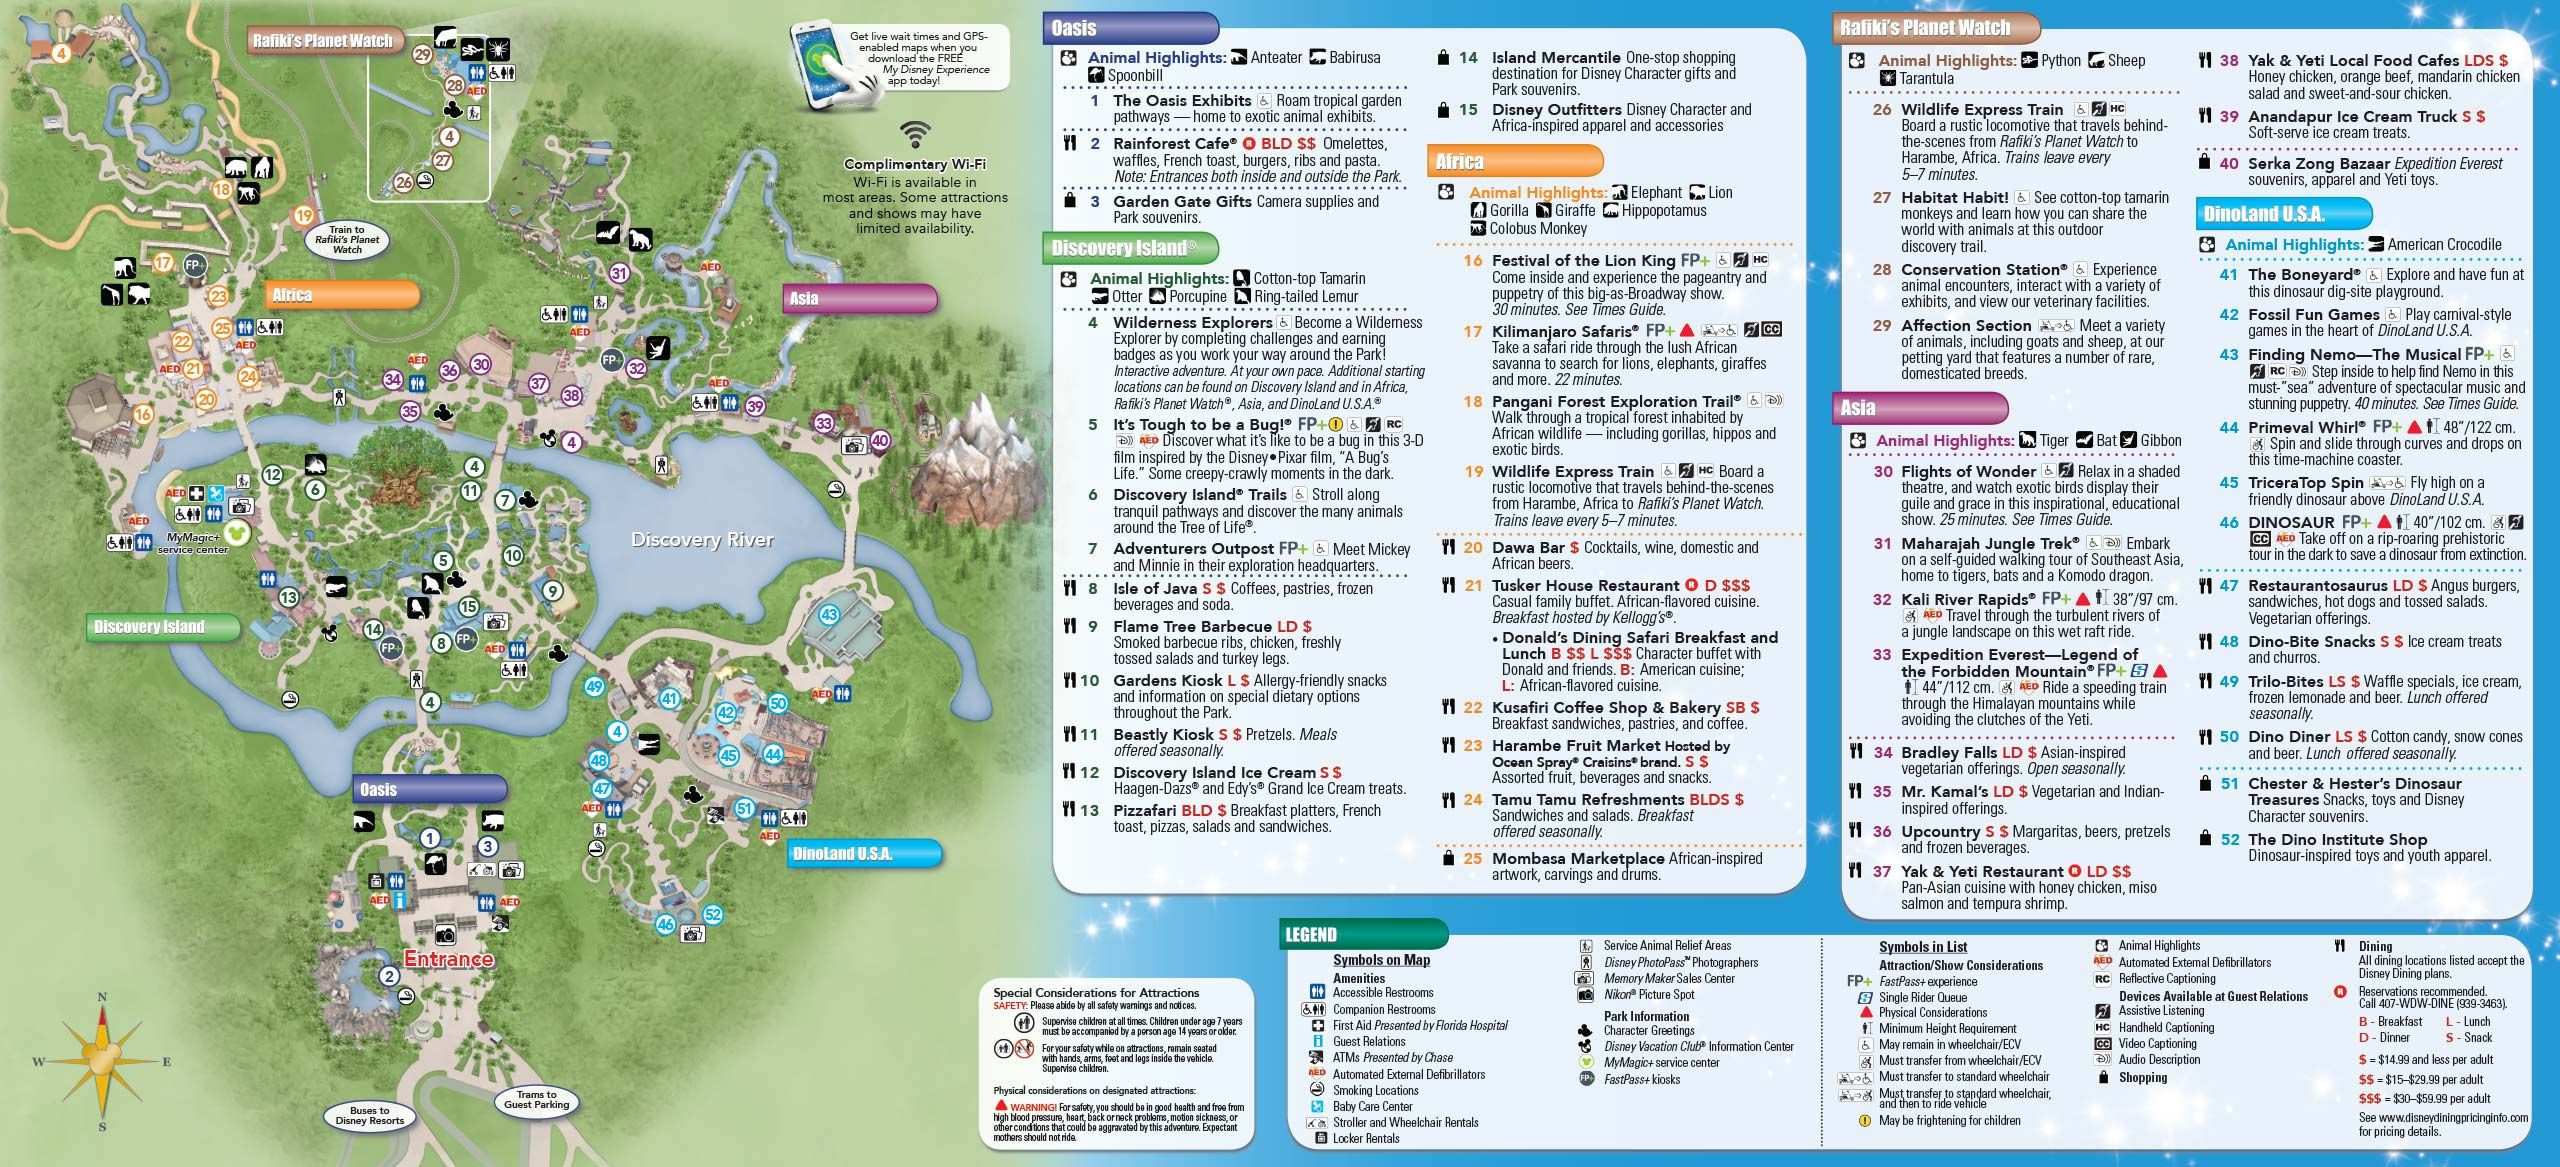 Printable Map Animal Kingdom Unique Disneyland Park California Map Printable Maps Disney S Animal